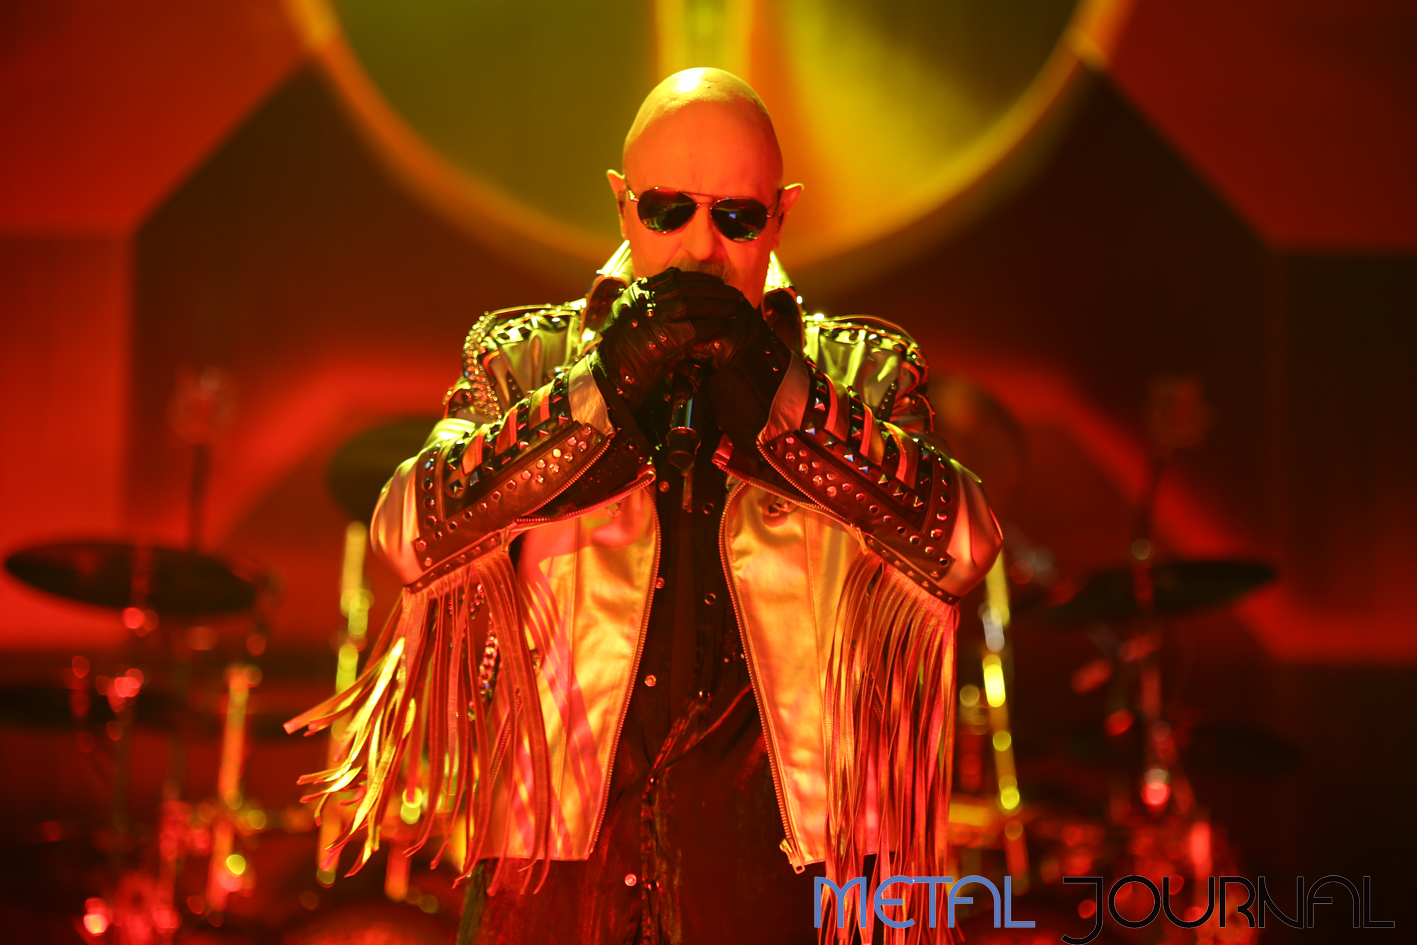 judas priest - metal journal barakaldo 2018 pic 1